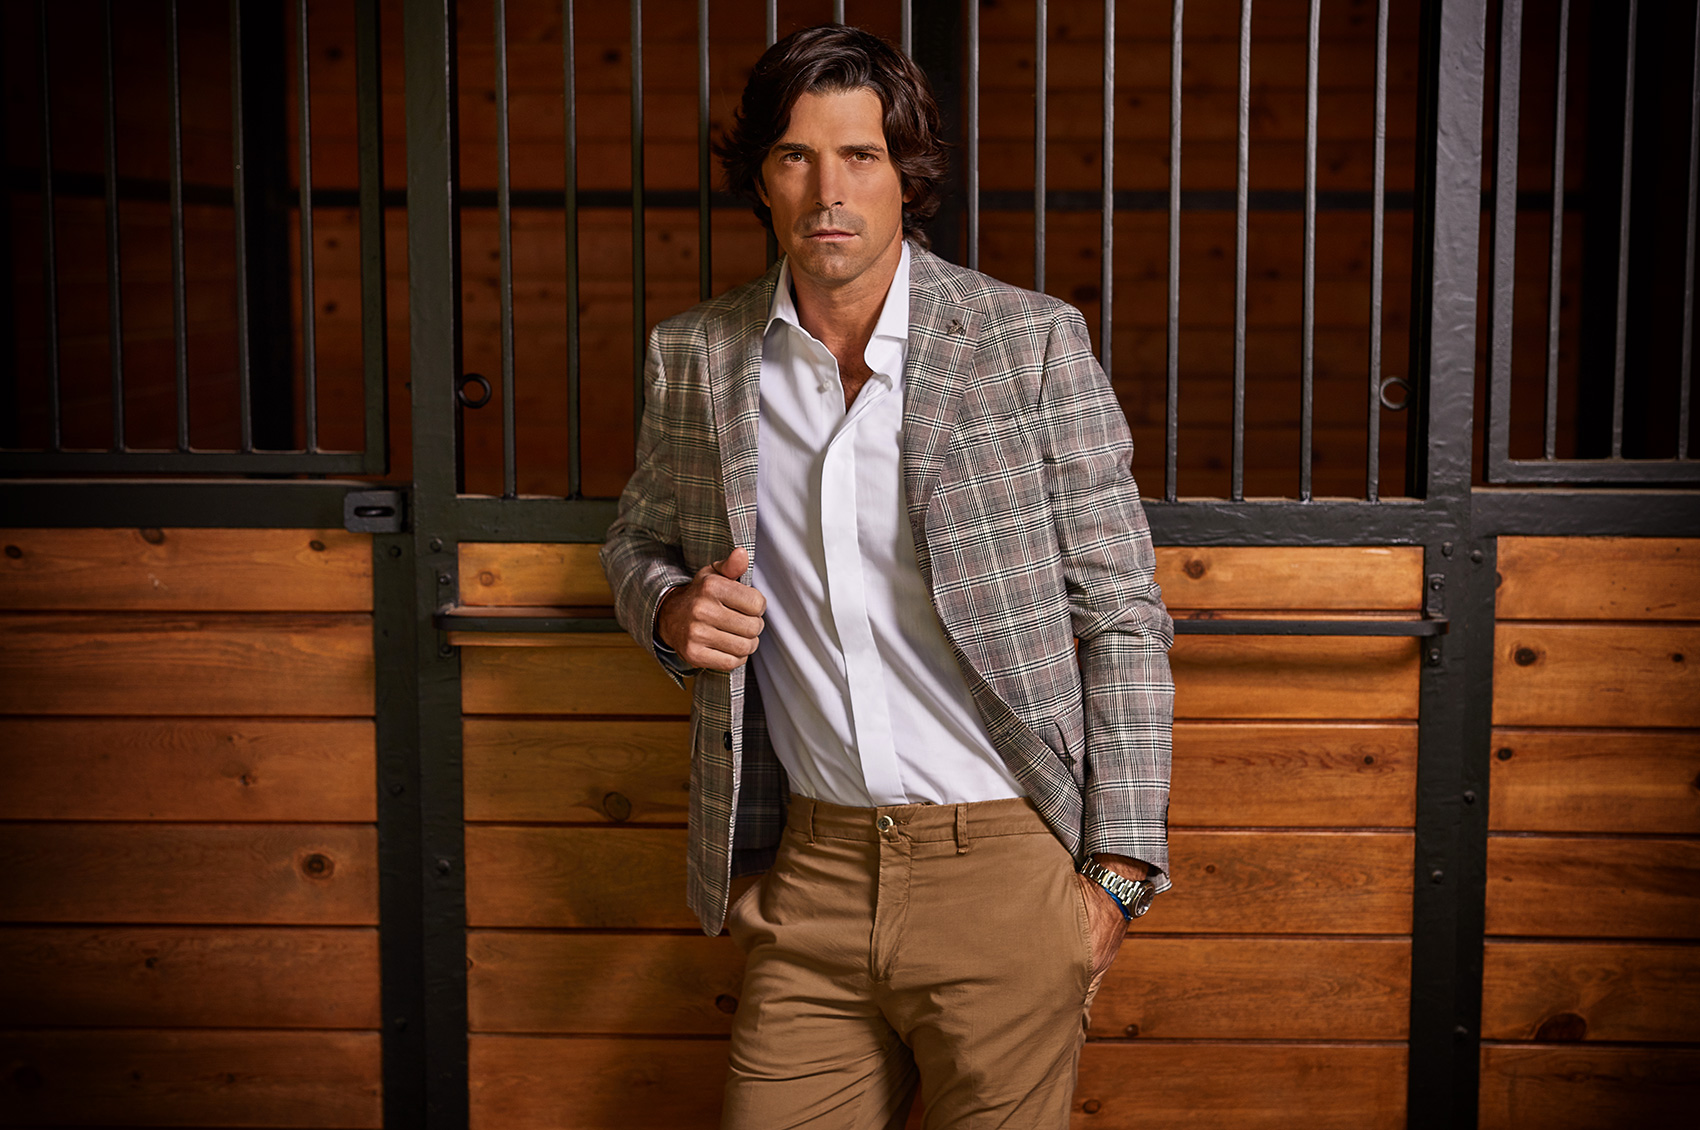 Los Angeles Portrait Photographer. Nacho Figueras. Celebrity Polo Player